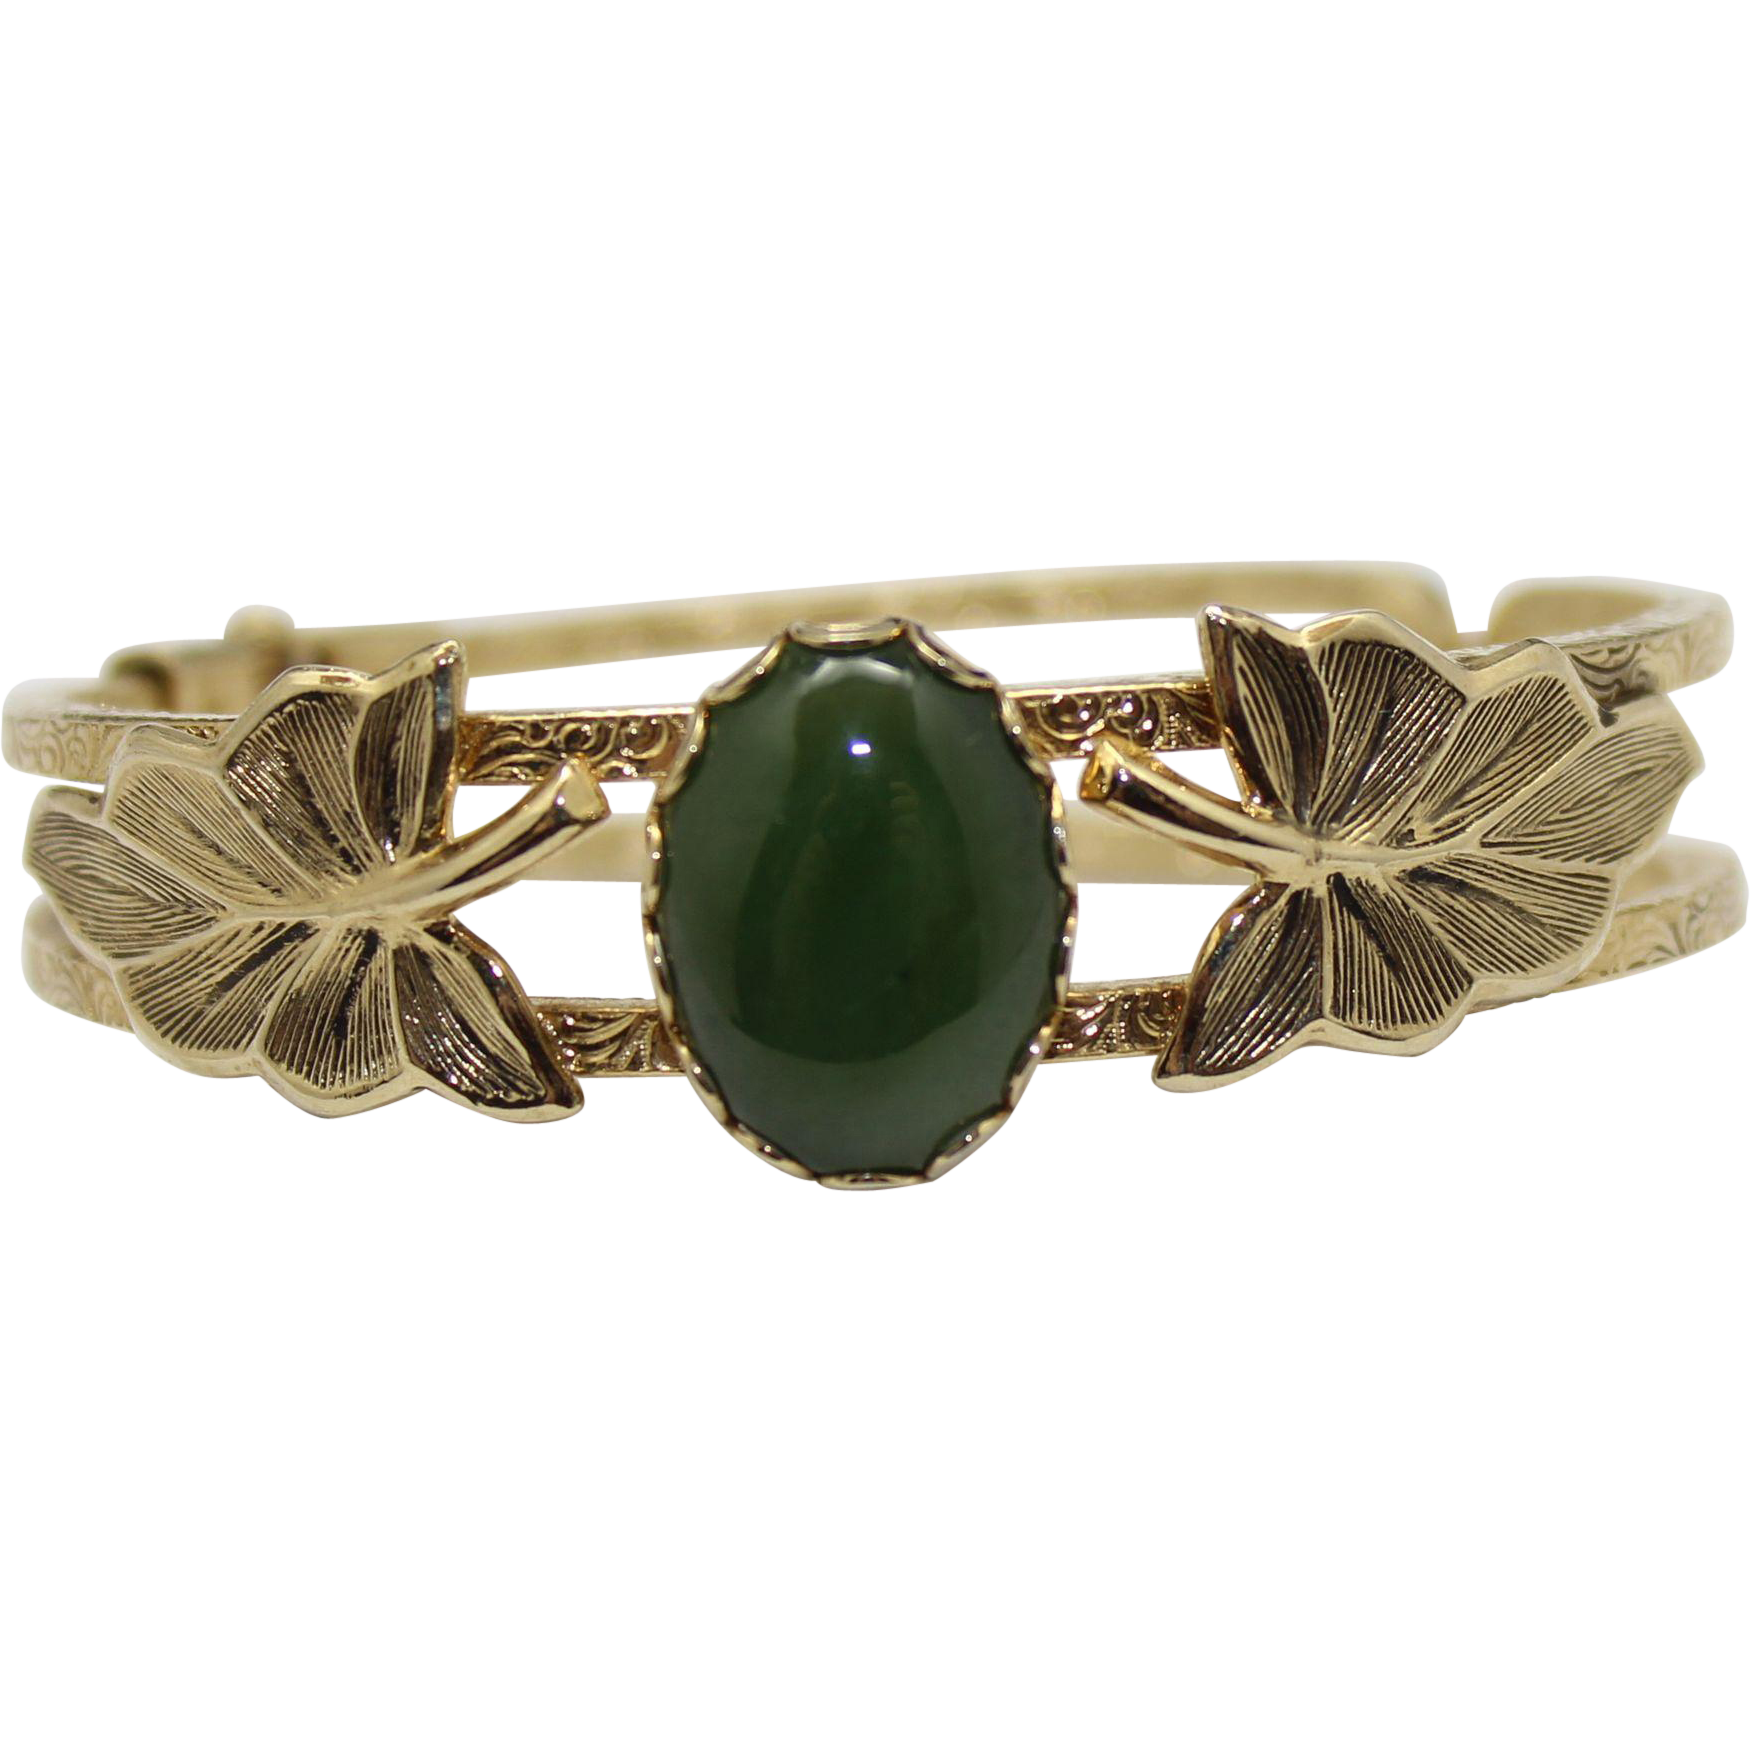 Vintage Jade Glass & Metal Leaf Clamper Bracelet